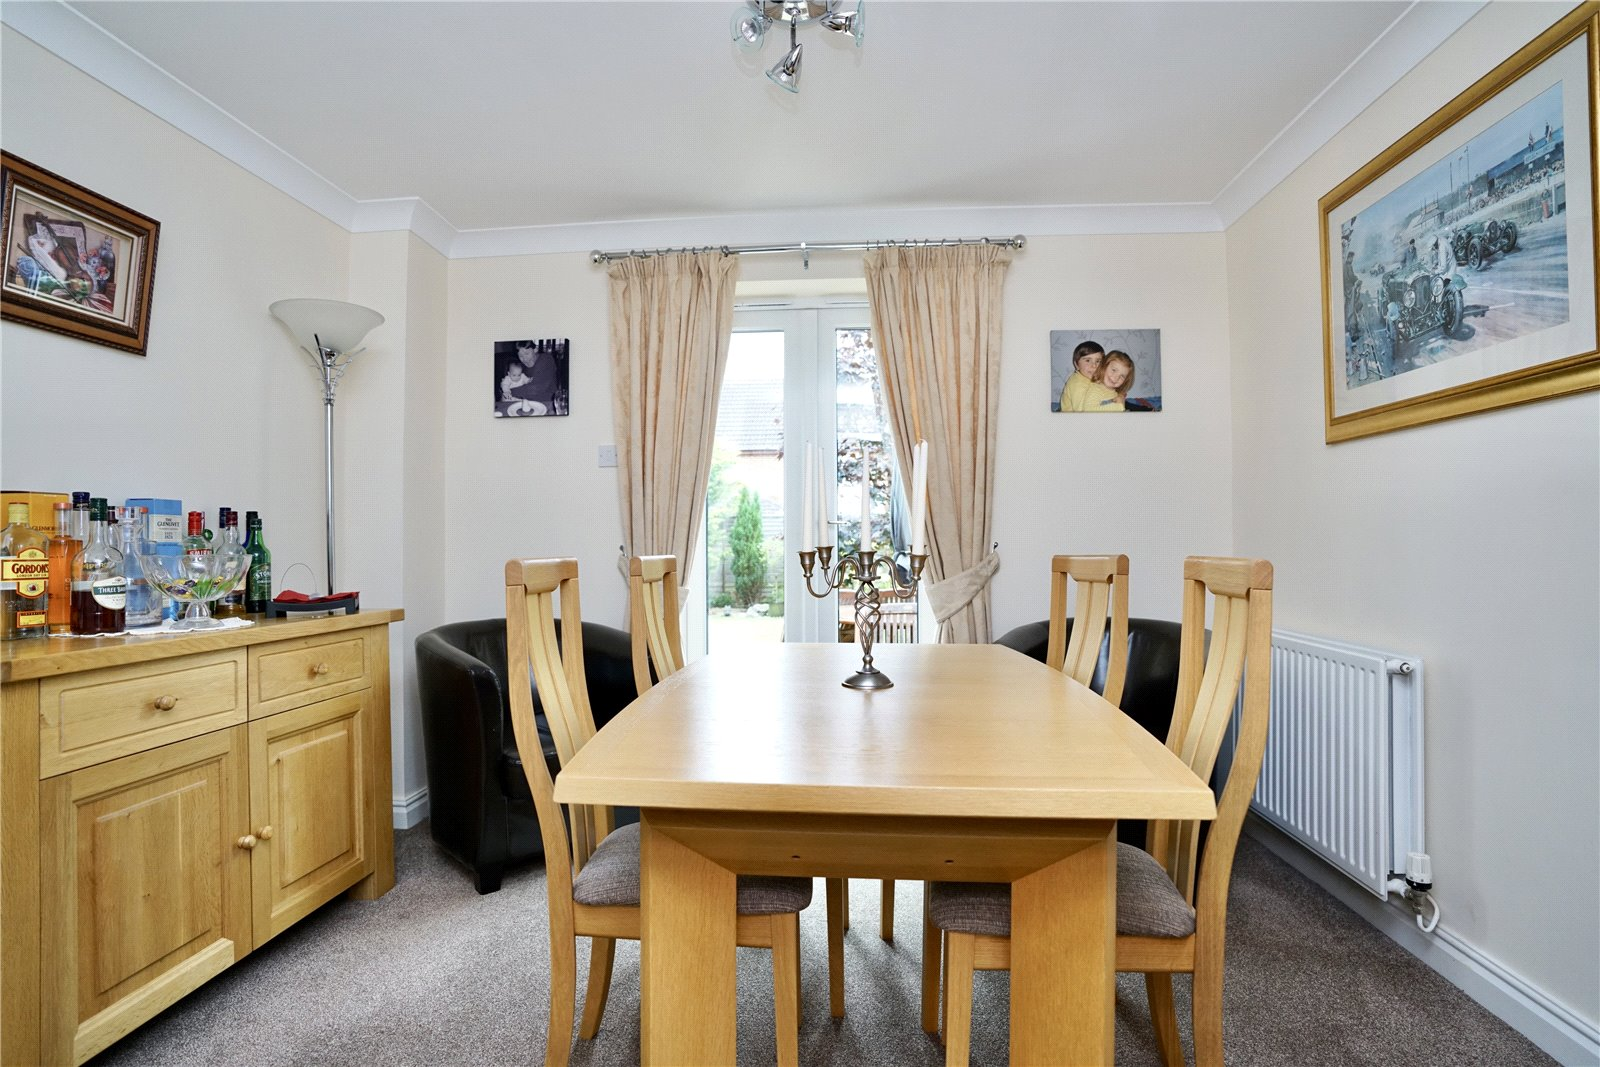 4 bed house for sale in Great Gransden  - Property Image 14